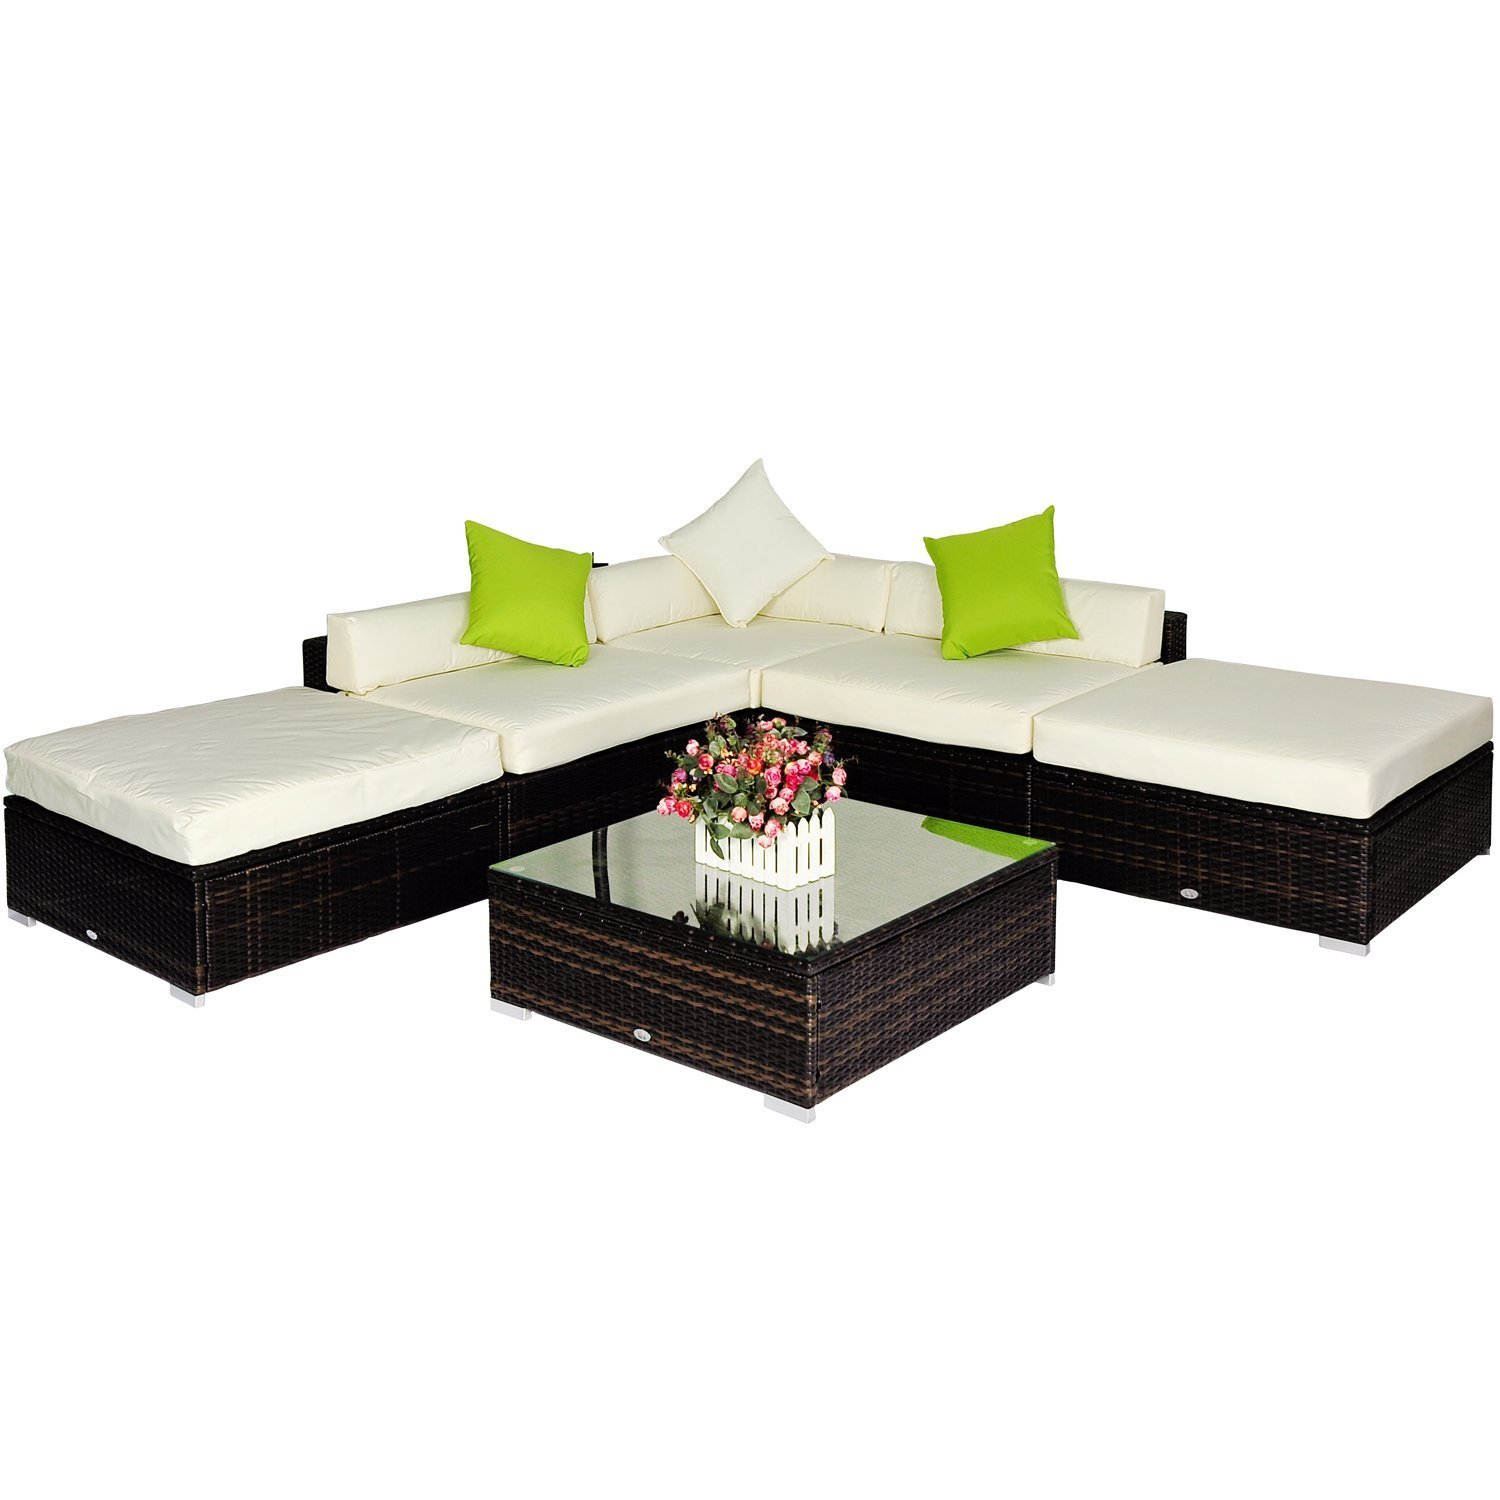 outsunny gartenset polyrattan gartenm bel alu rattan sitzgruppe garnitur 18 teilig braun. Black Bedroom Furniture Sets. Home Design Ideas